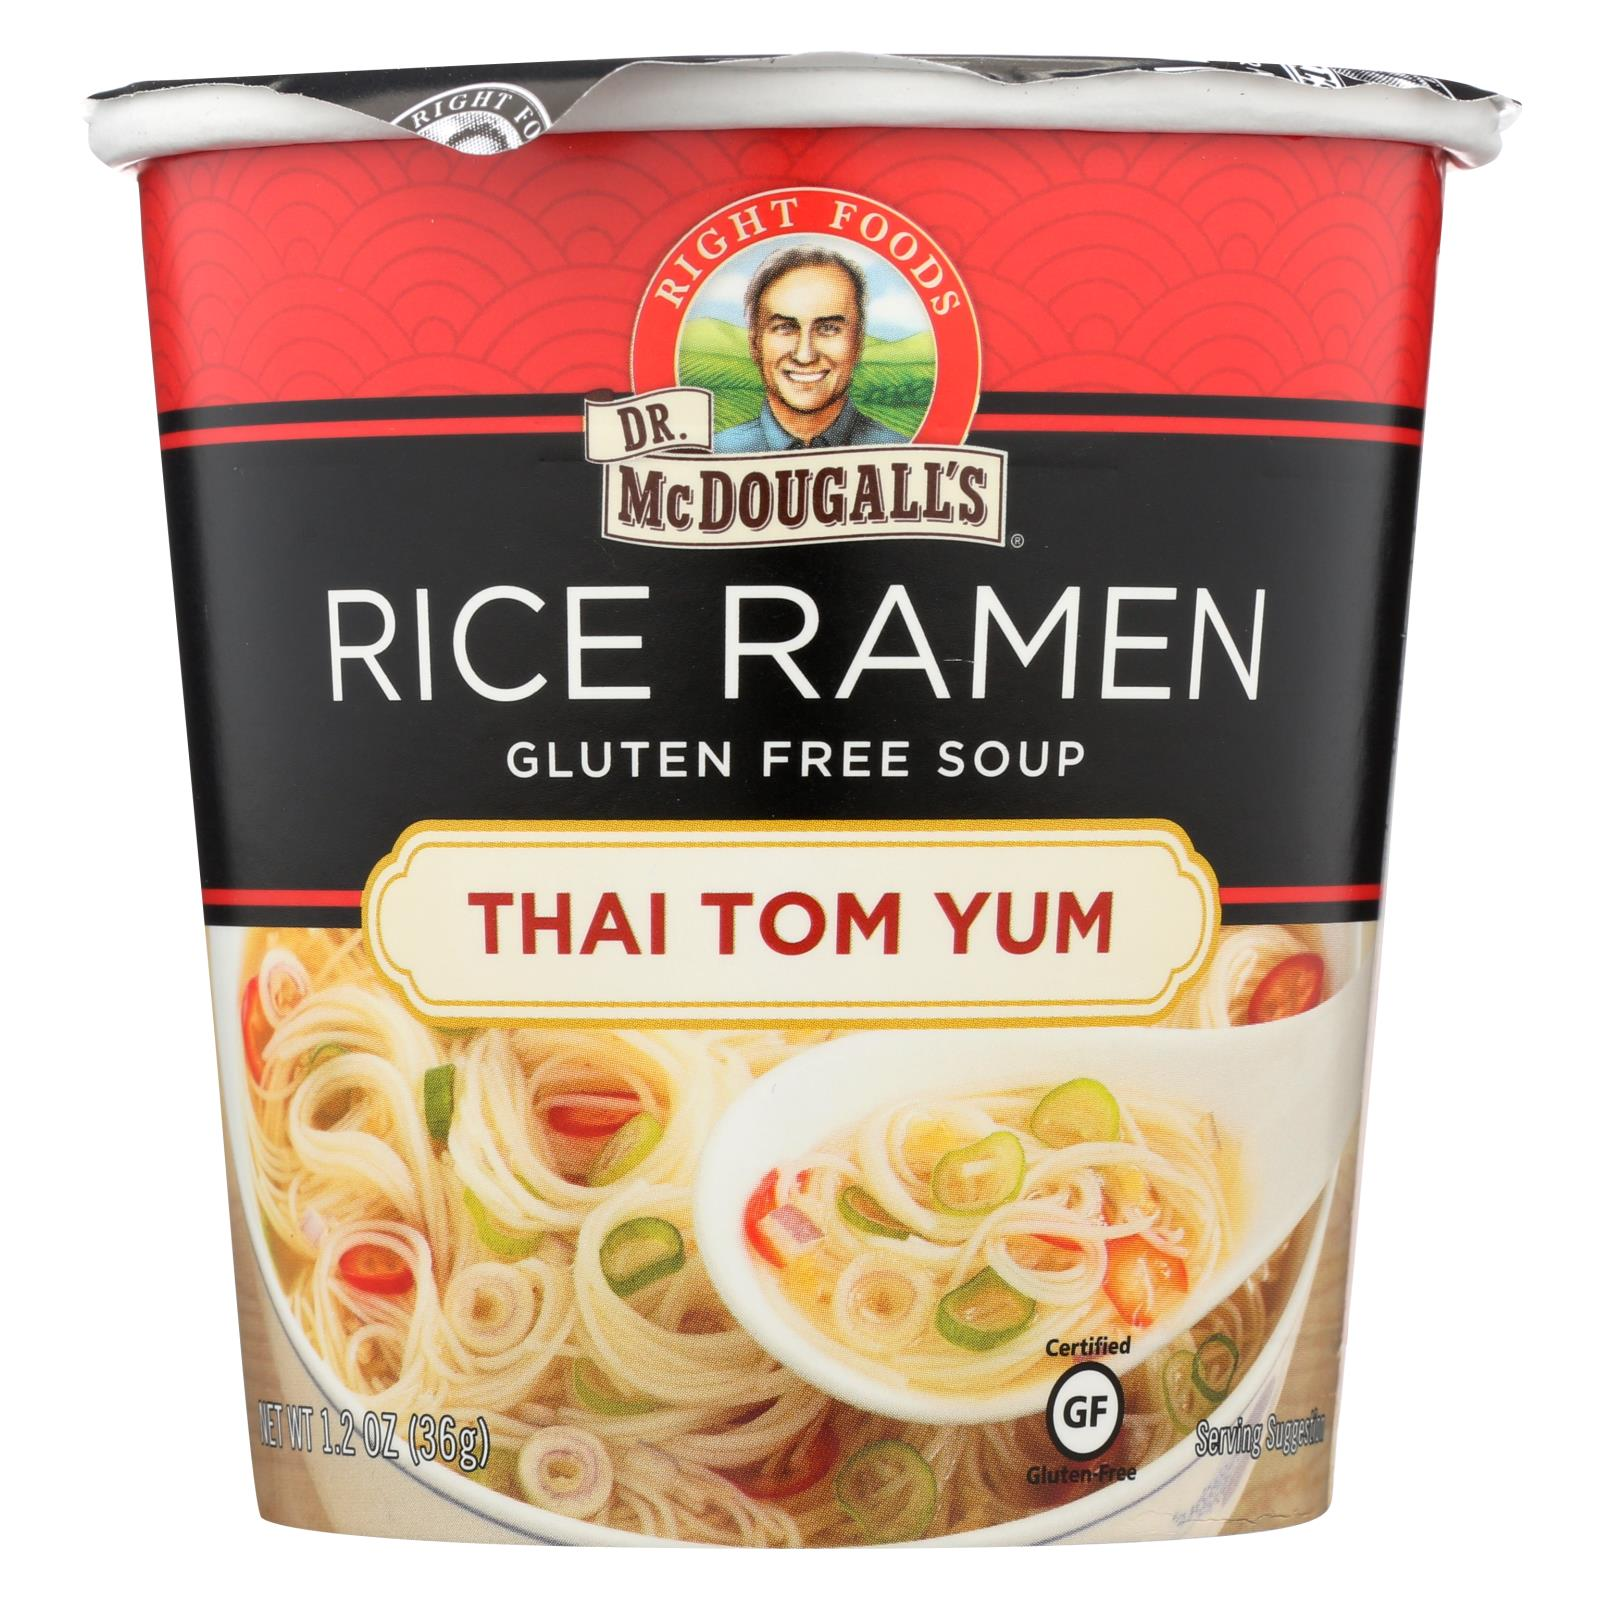 Dr. Mcdougall's Thai Tom Yum Asian Soup Cup - Case Of 6 - 1.2 Oz. HG1561372